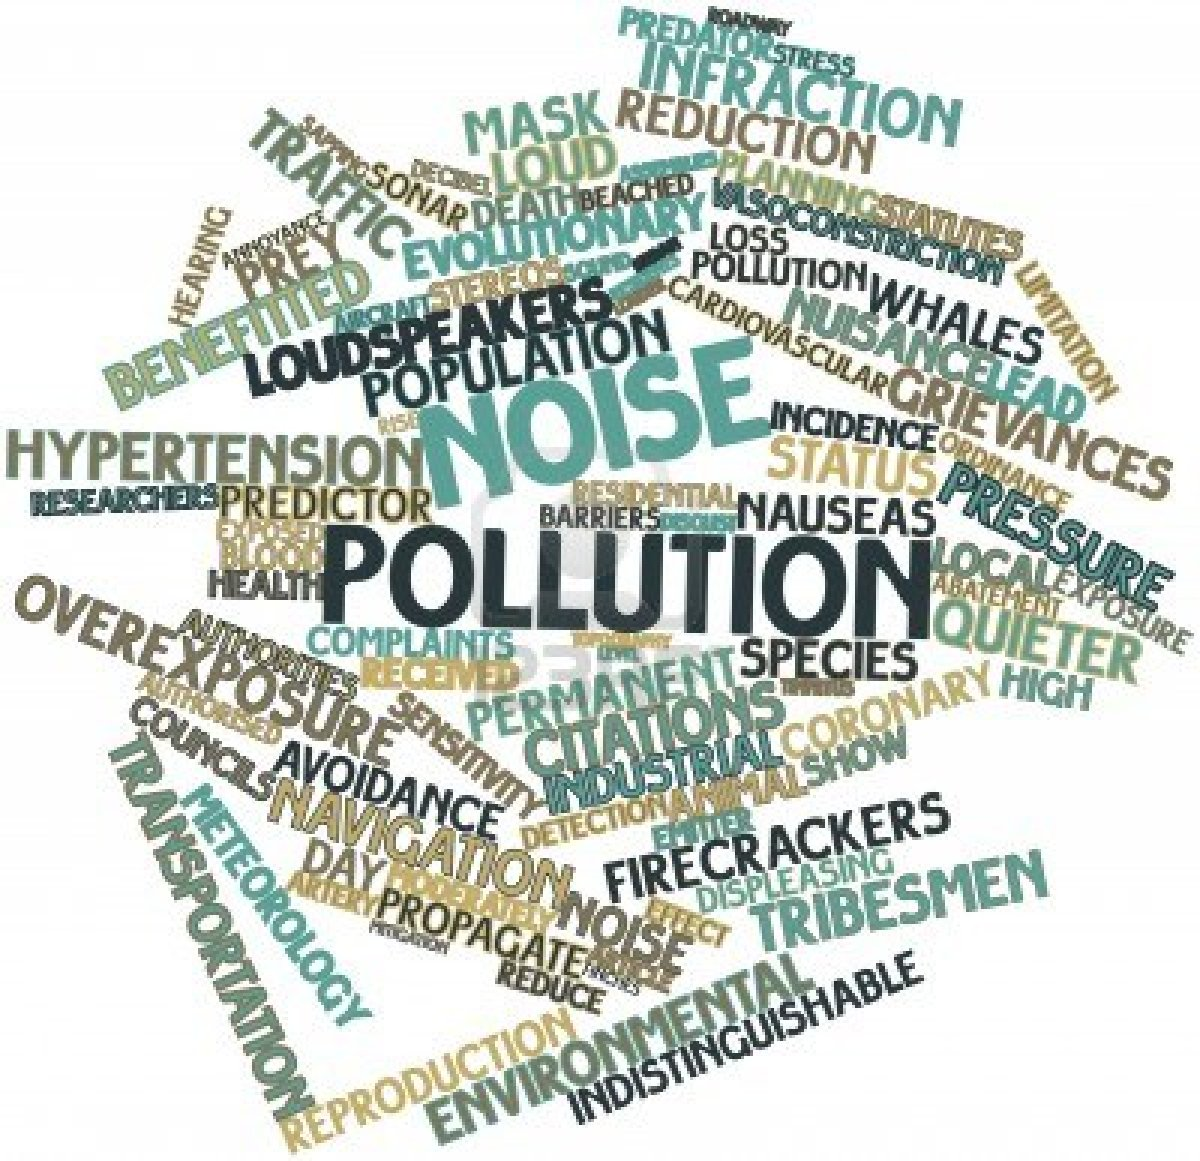 environment pollution caused by construction activities environmental sciences essay Environmental pollution is one of the main threats for our planet pollution destroys the living environment and endangers human existence on earth no doubt, the economy finds many benefits in technological development however, toxic emissions due to the work of factories, transportation, construction sites pollute the environment substantially.